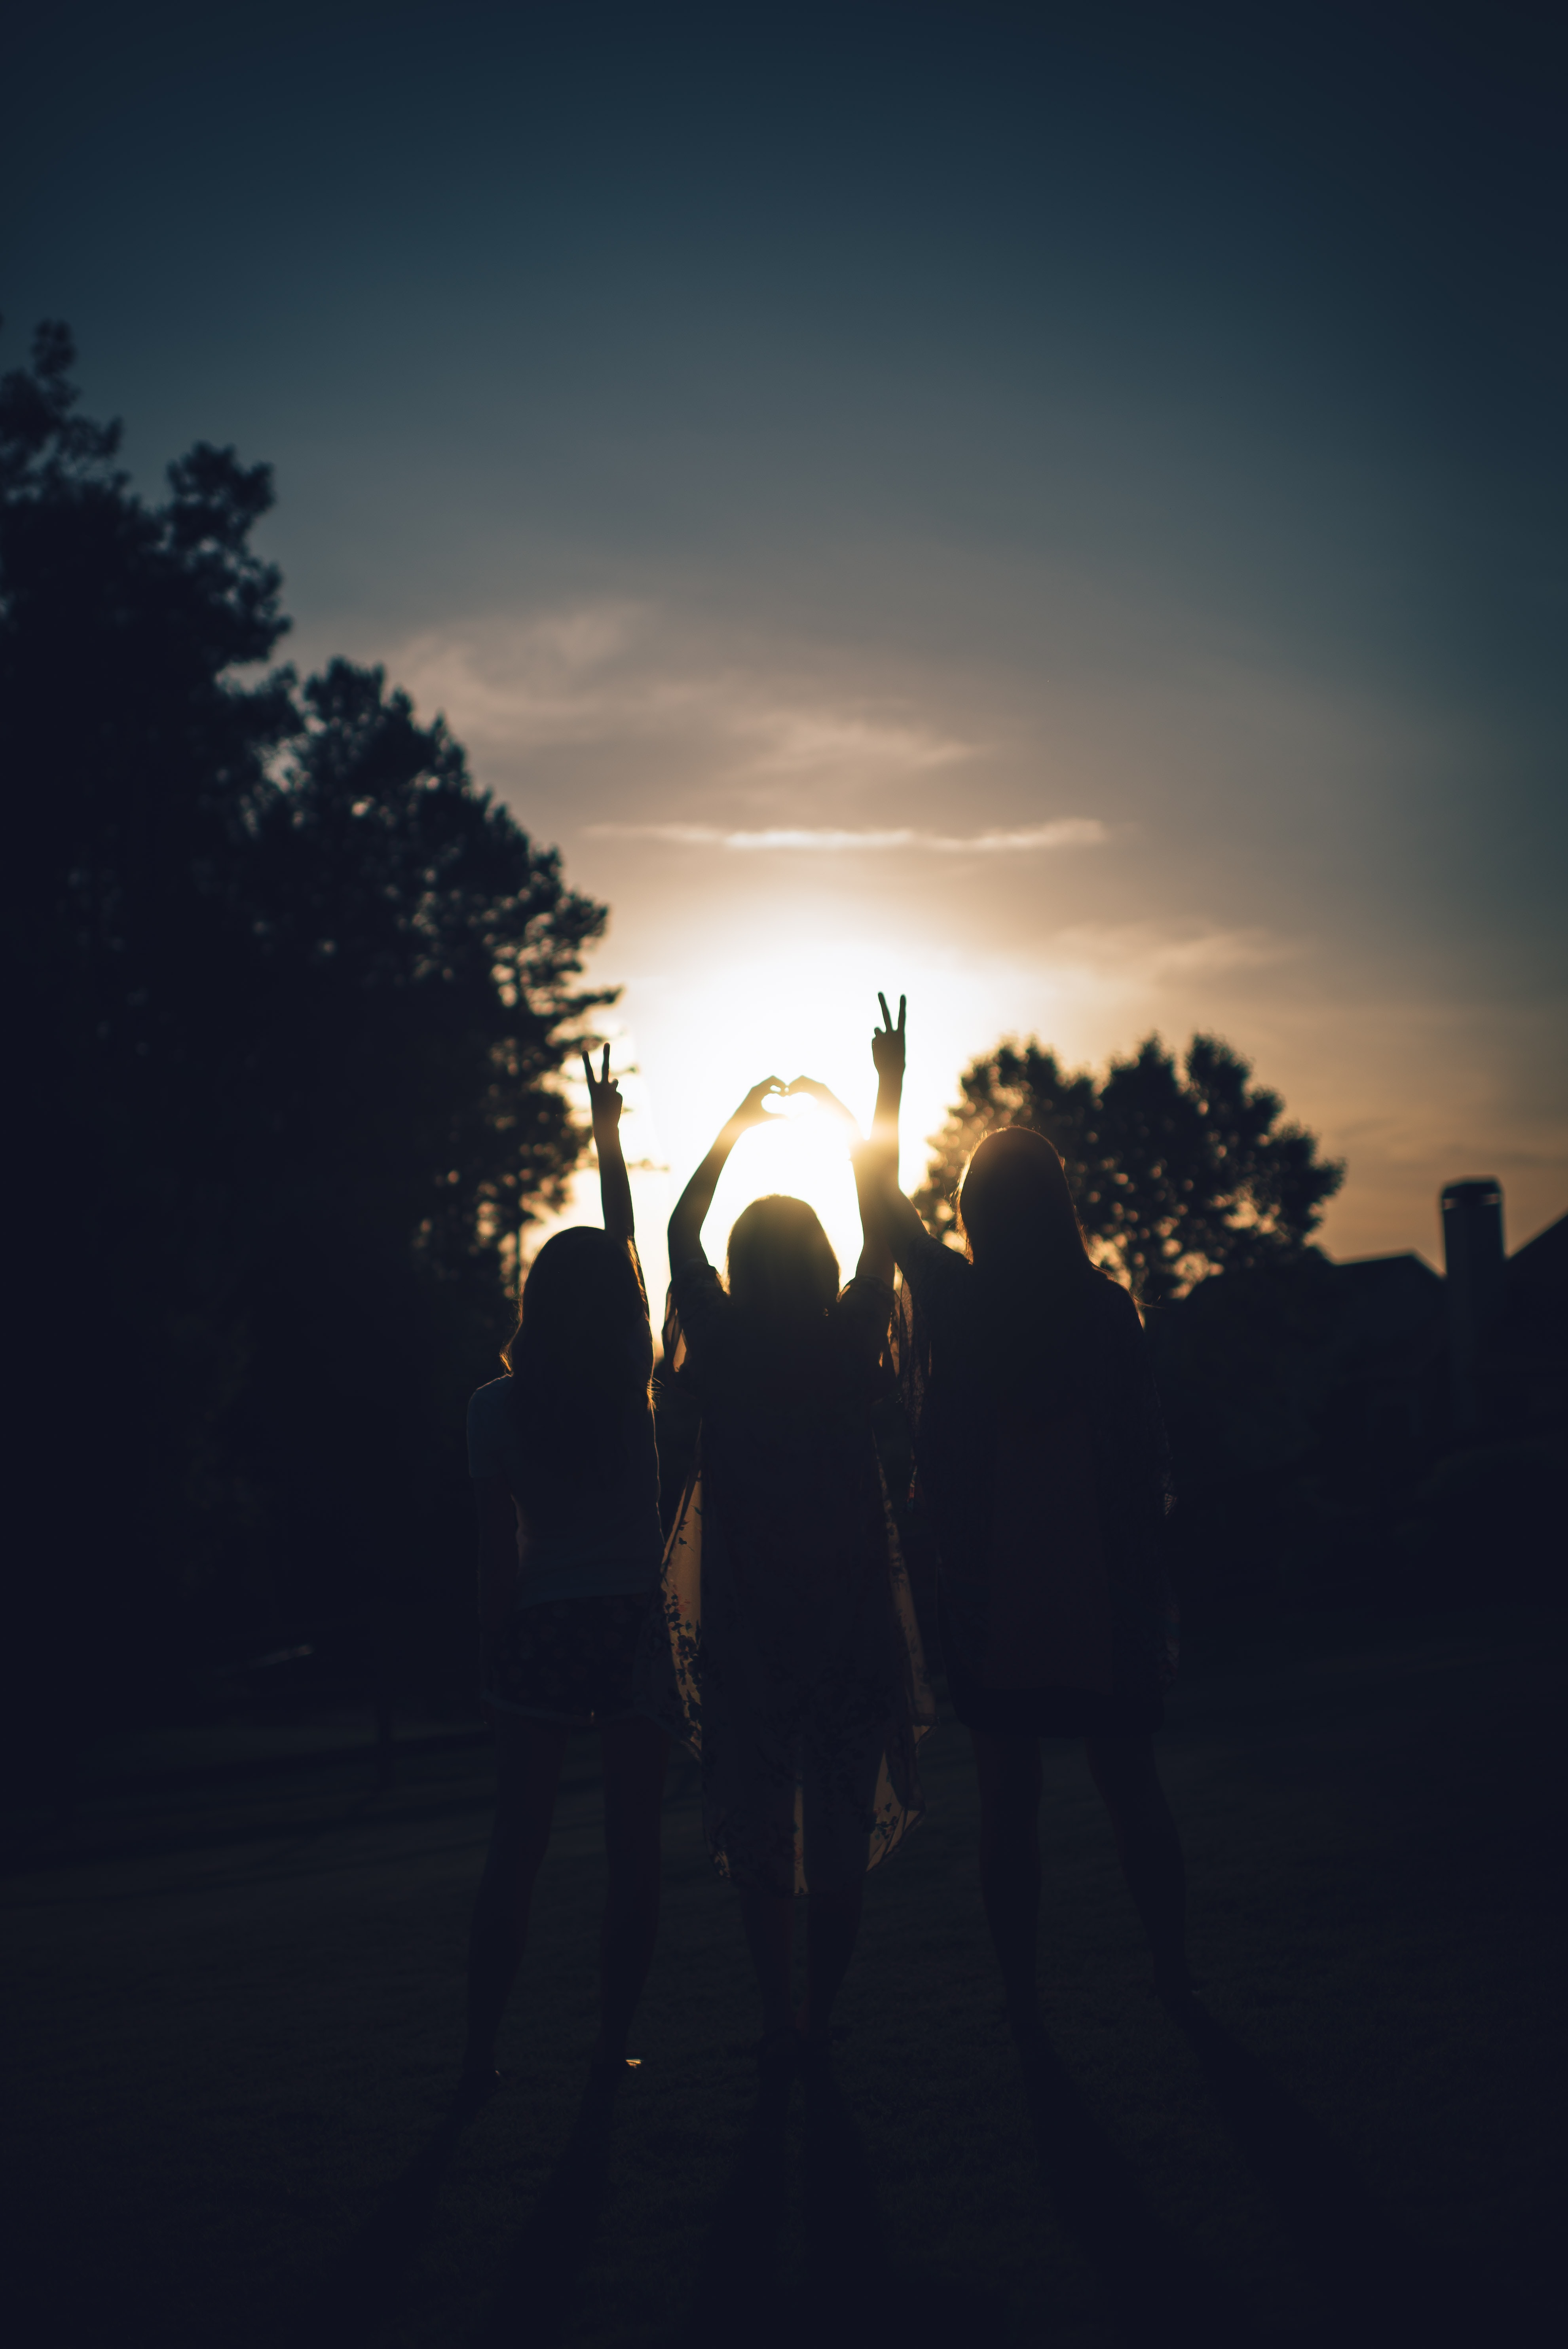 Silhouette of three girls holding up peace signs and a heart hand sign during sunset